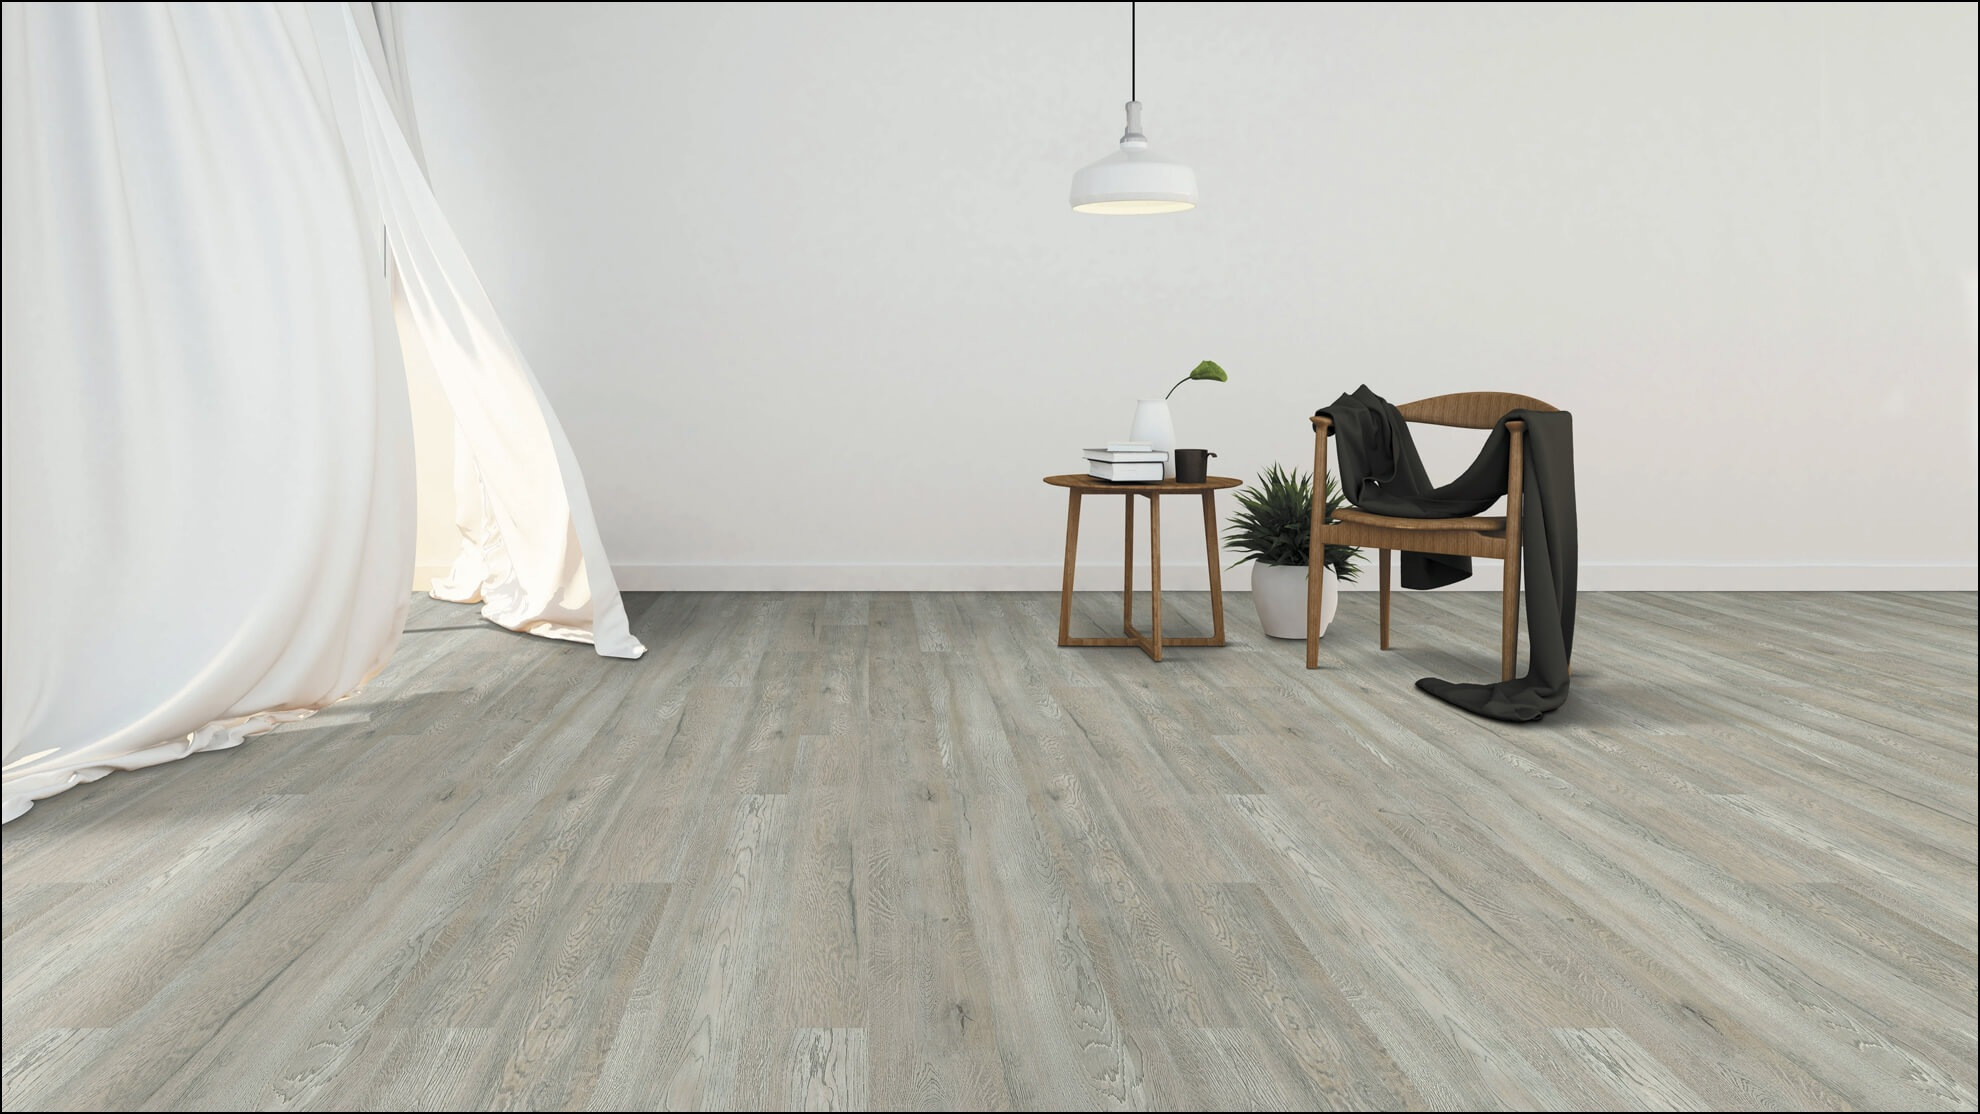 Cost Of Hand Scraped Hardwood Floors Installed Of Hardwood Flooring Suppliers France Flooring Ideas Throughout Hardwood Flooring Installation San Diego Collection Earthwerks Flooring Of Hardwood Flooring Installation San Diego